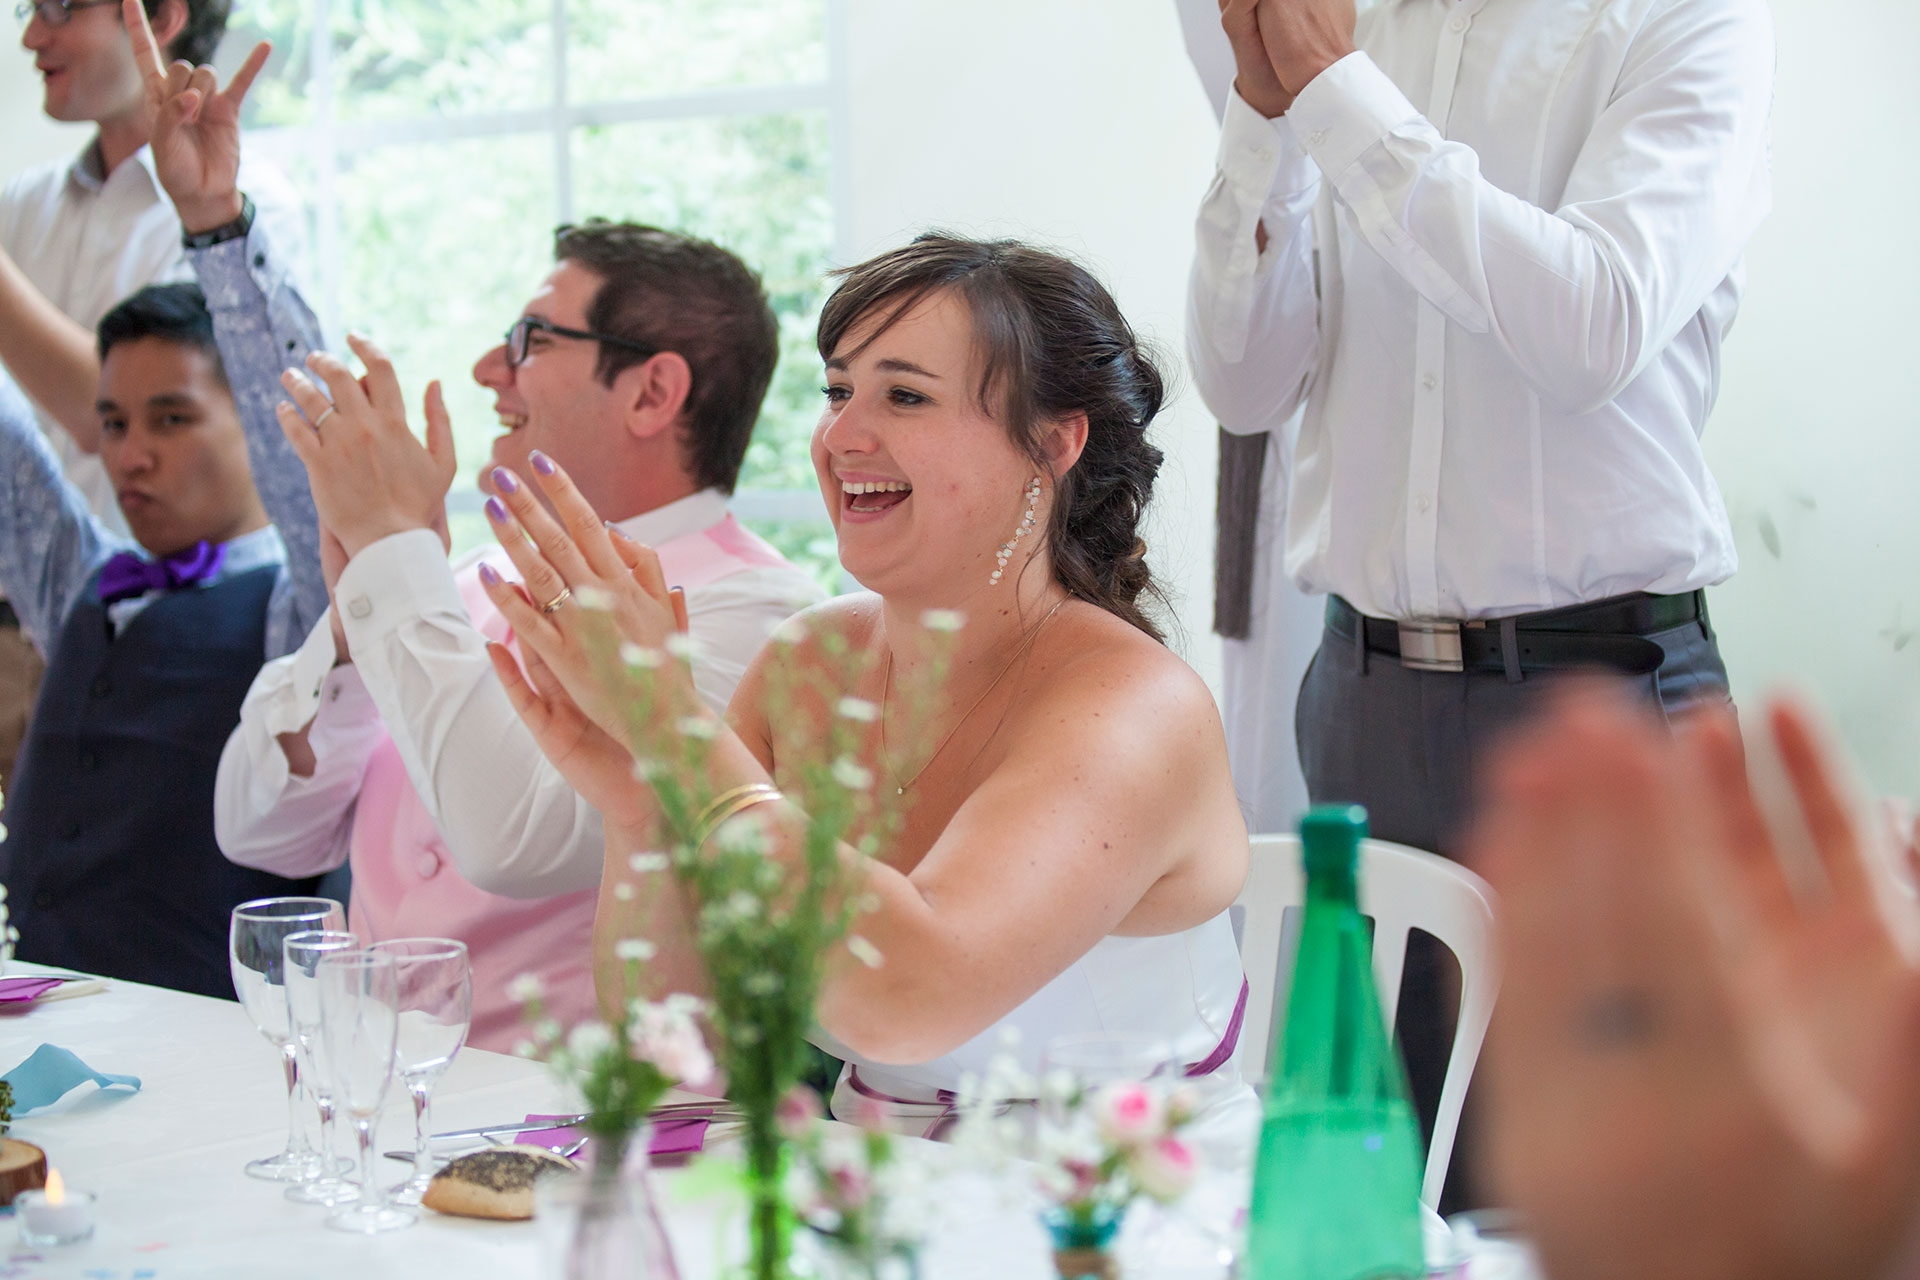 particuliers-evenements-mariages-oui-france&philippe-73